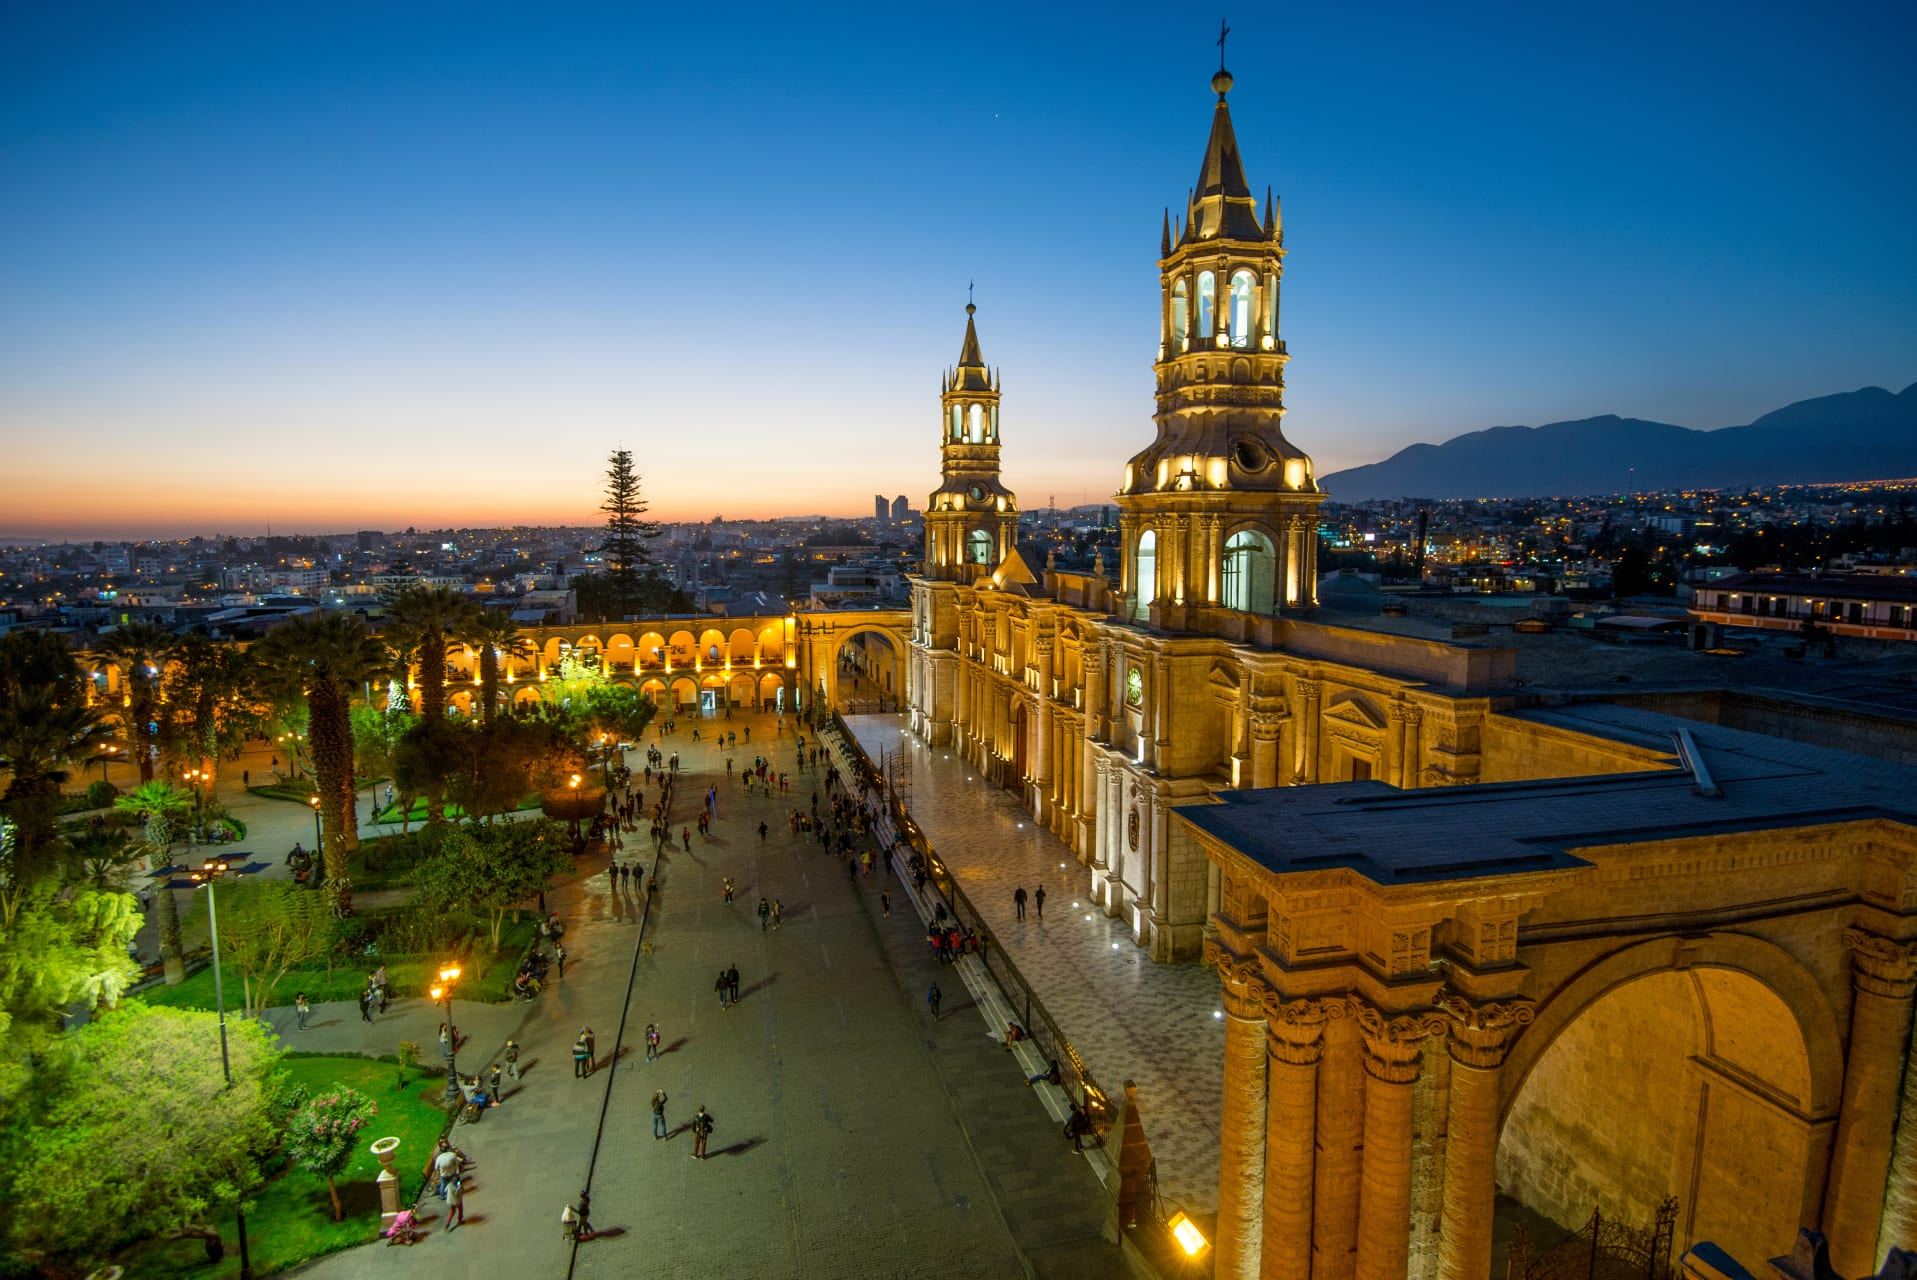 Arequipa - White City in the Evening